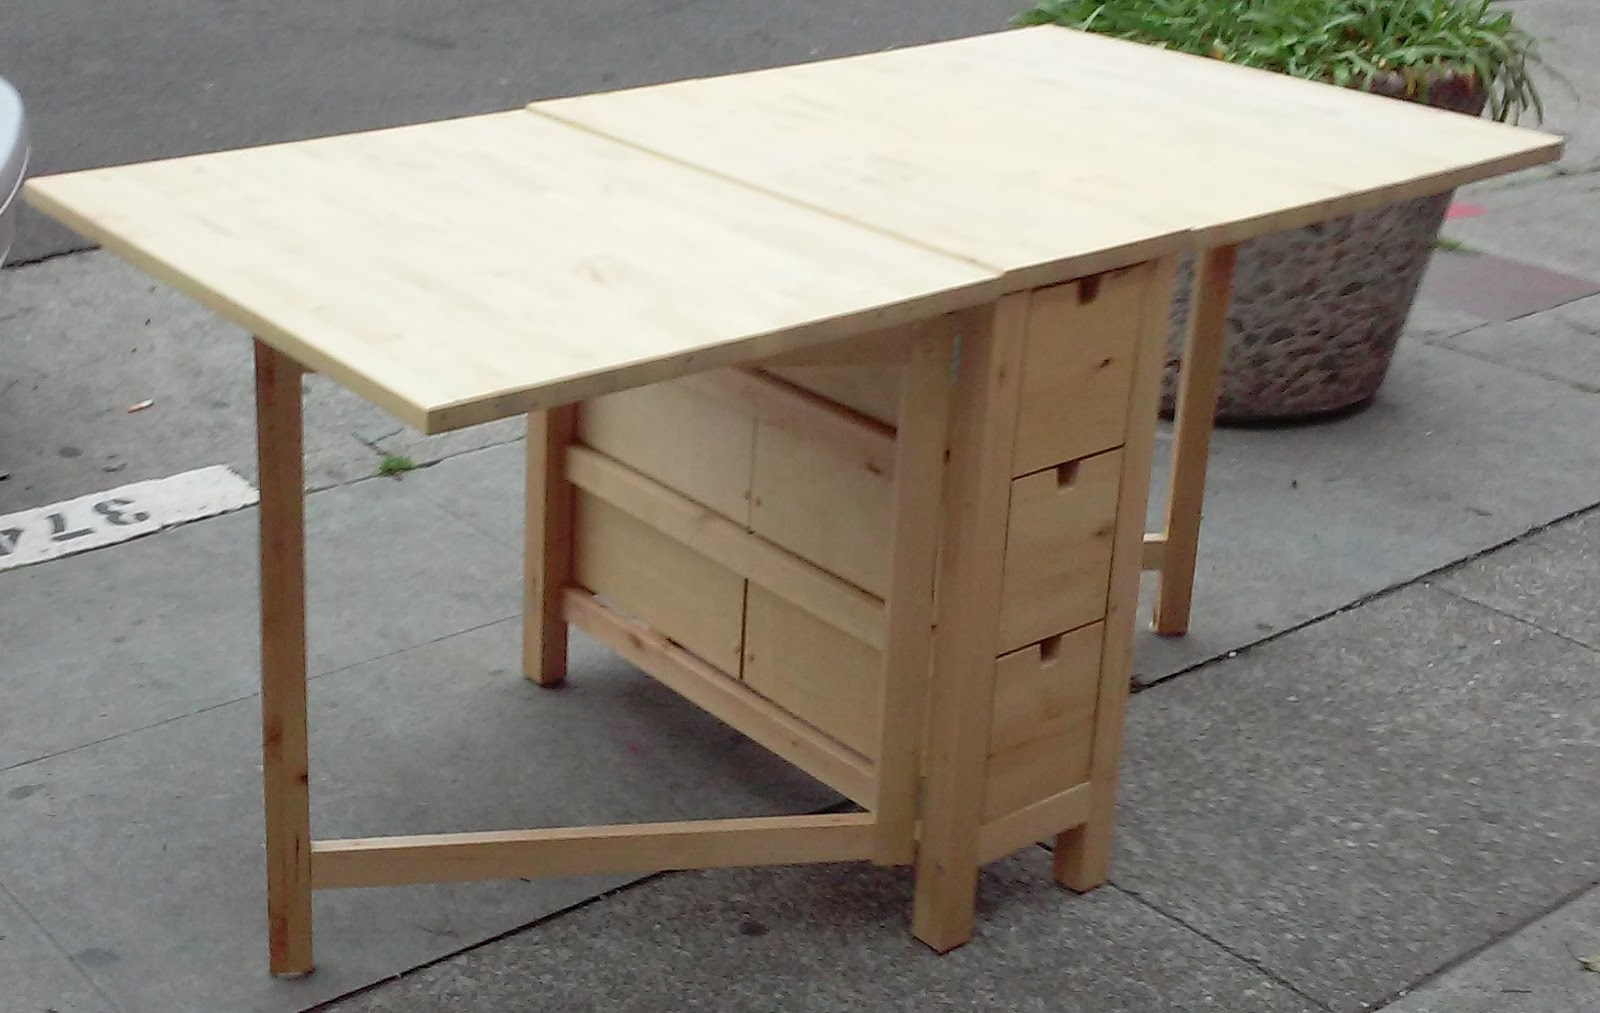 UHURU FURNITURE & COLLECTIBLES: SOLD IKEA Norden Gate Leg Drop Leaf Table - $100